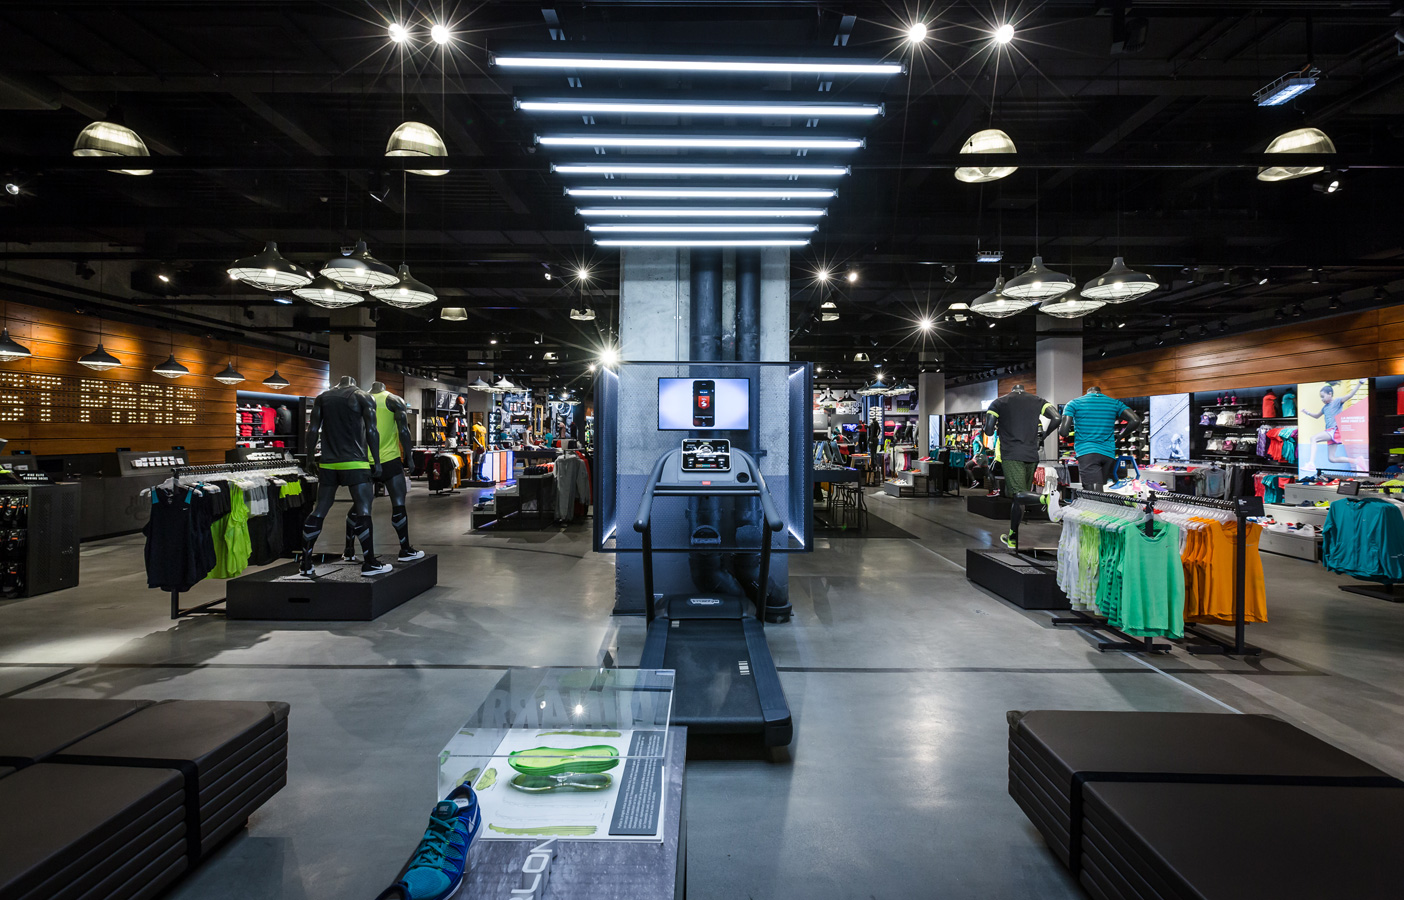 Nike Factory Store | Suite Nike brings inspiration and innovation to every athlete. Experience sports, training, shopping and everything else that's new at Nike in .